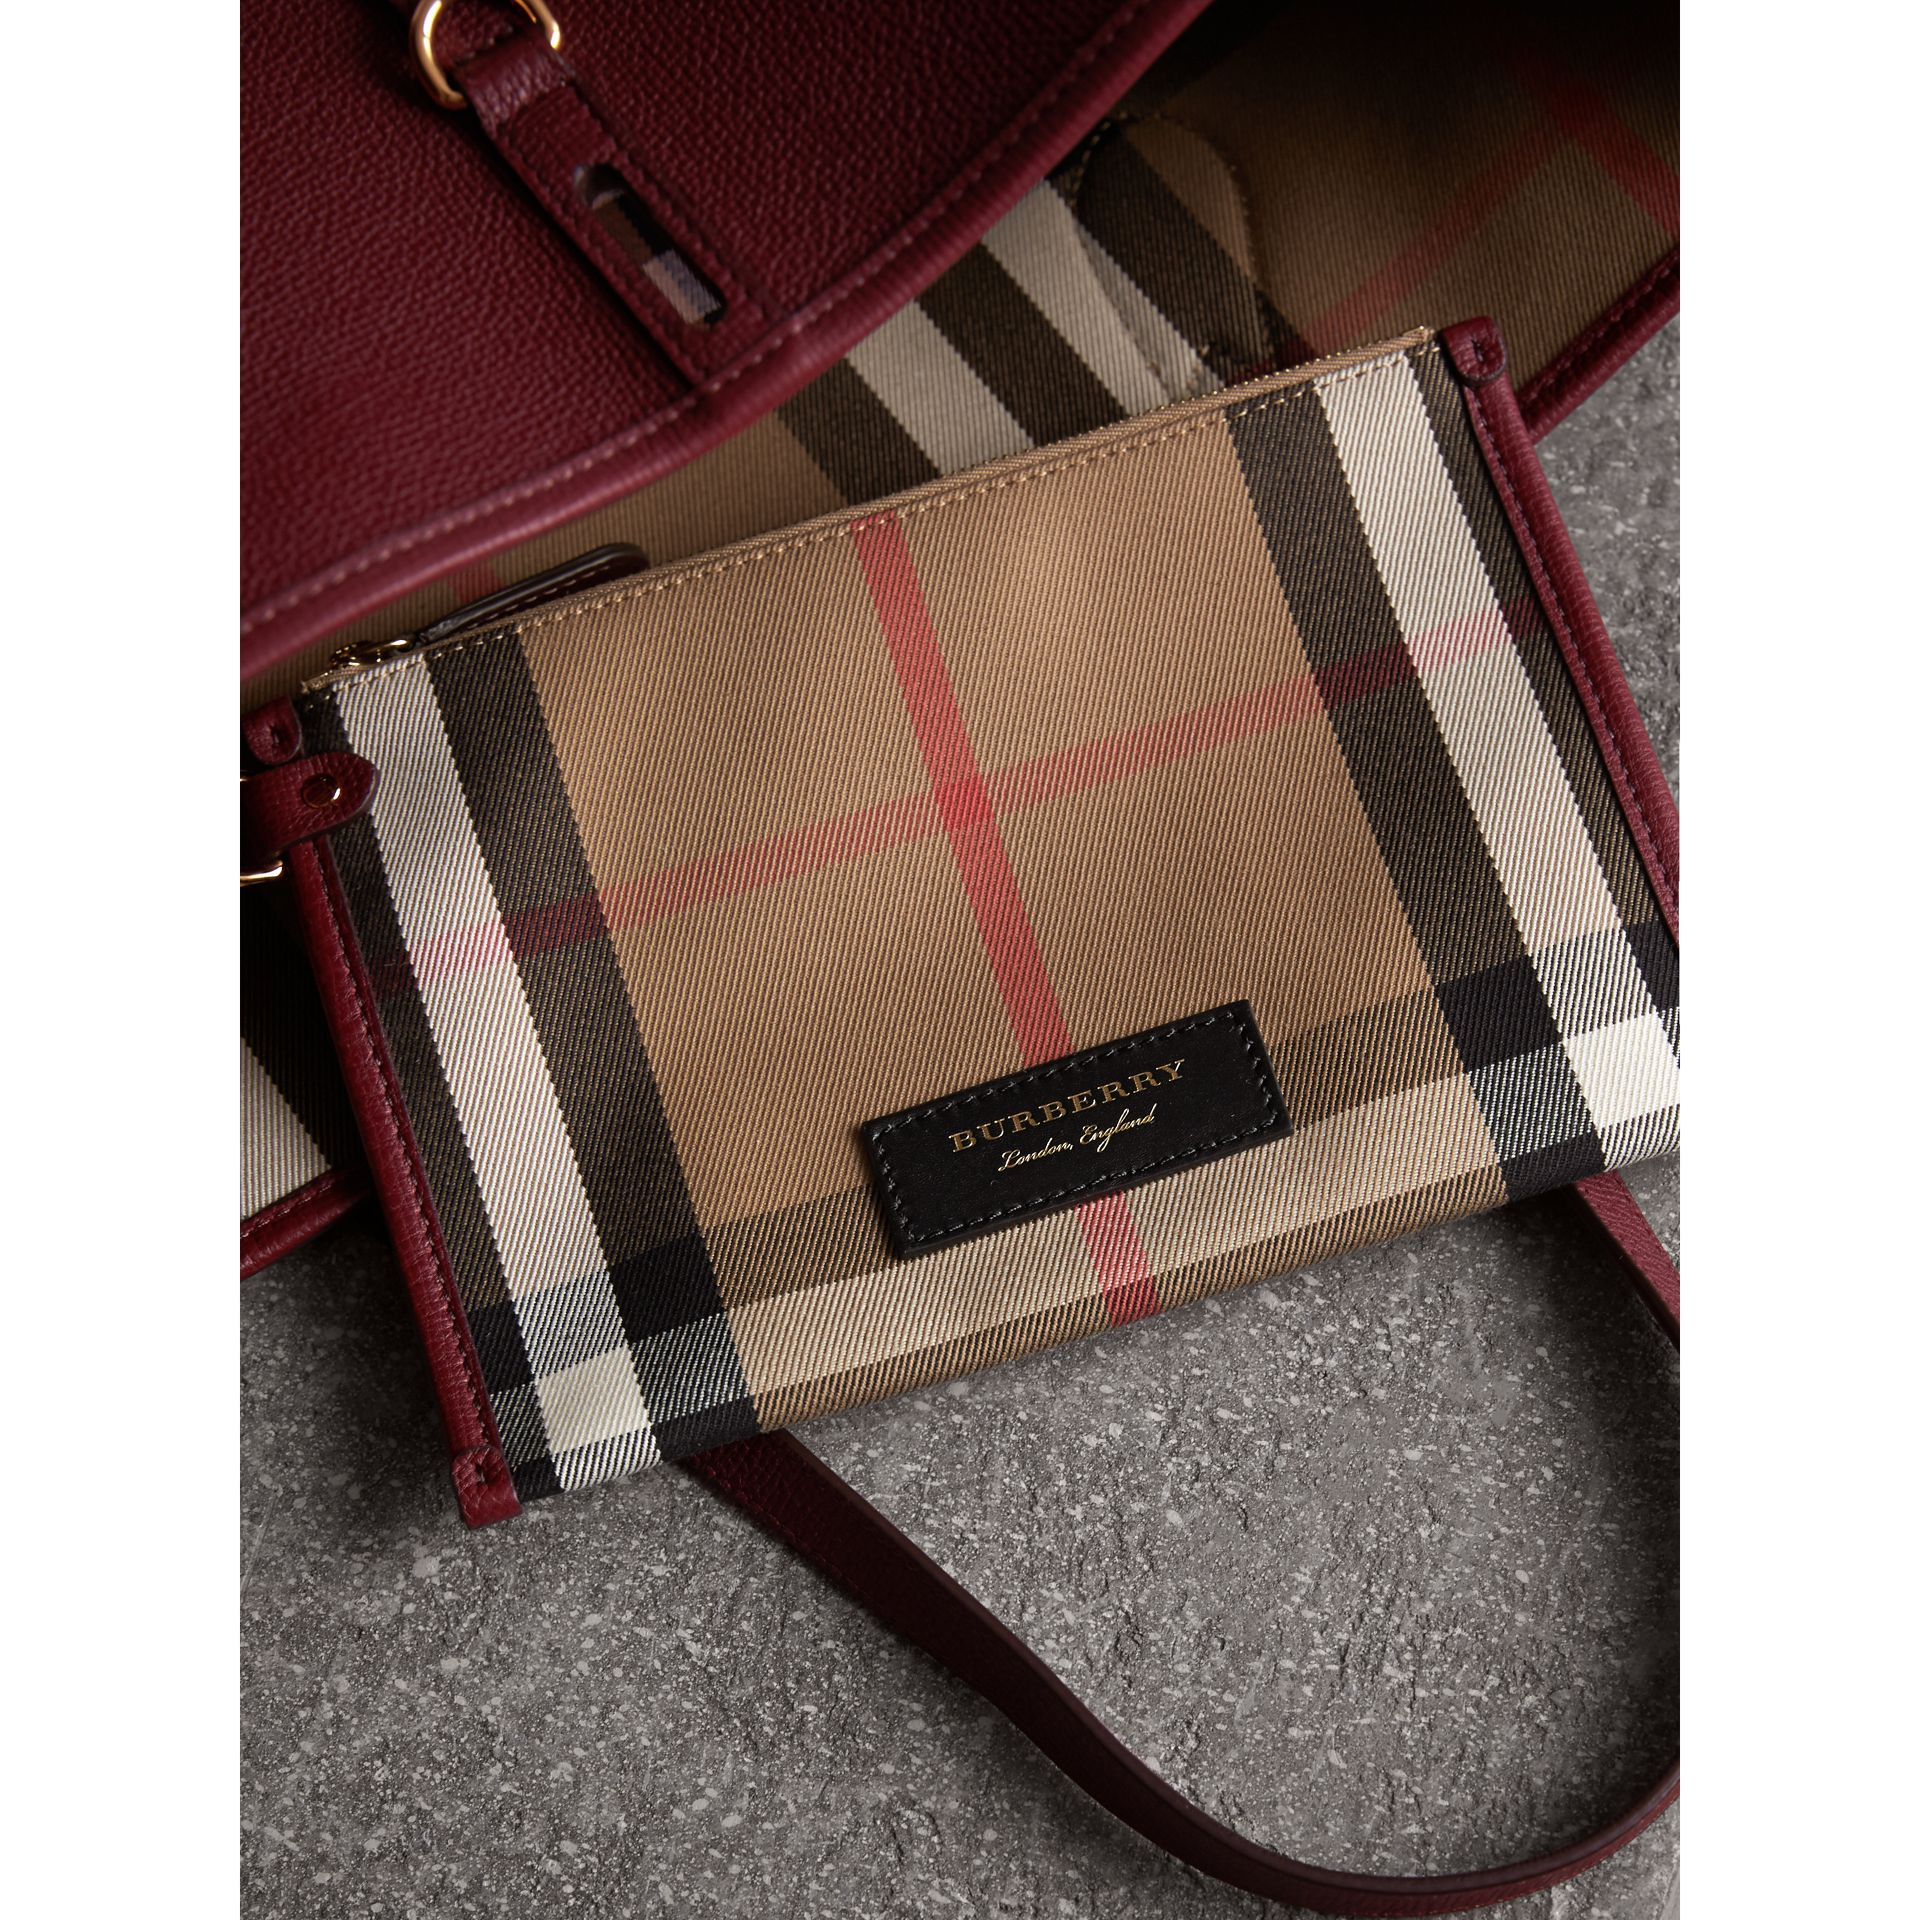 Medium Grainy Leather Tote Bag in Mahogany Red - Women | Burberry - gallery image 5